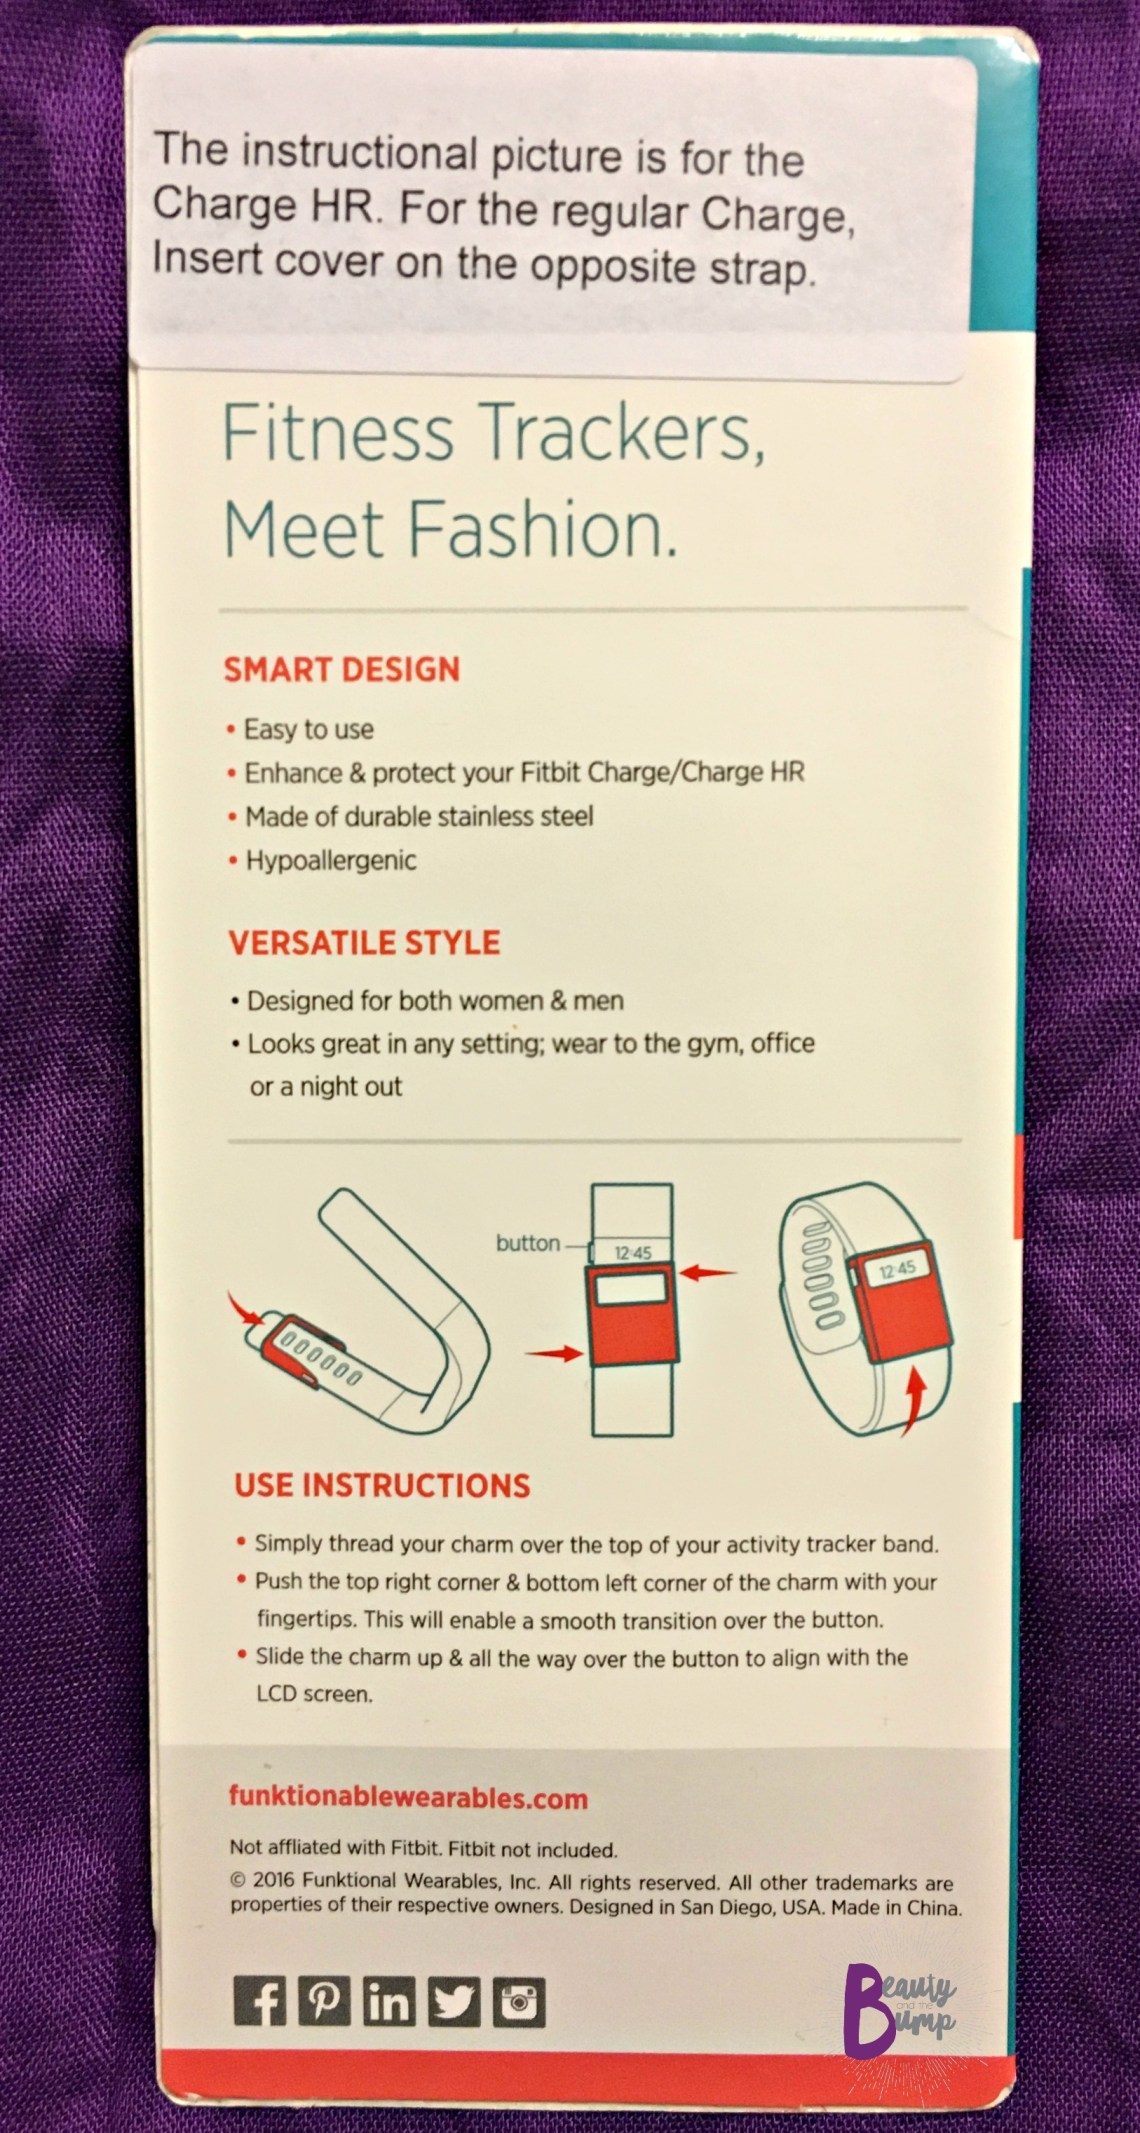 Funktional Wearables Charge HR Instructions